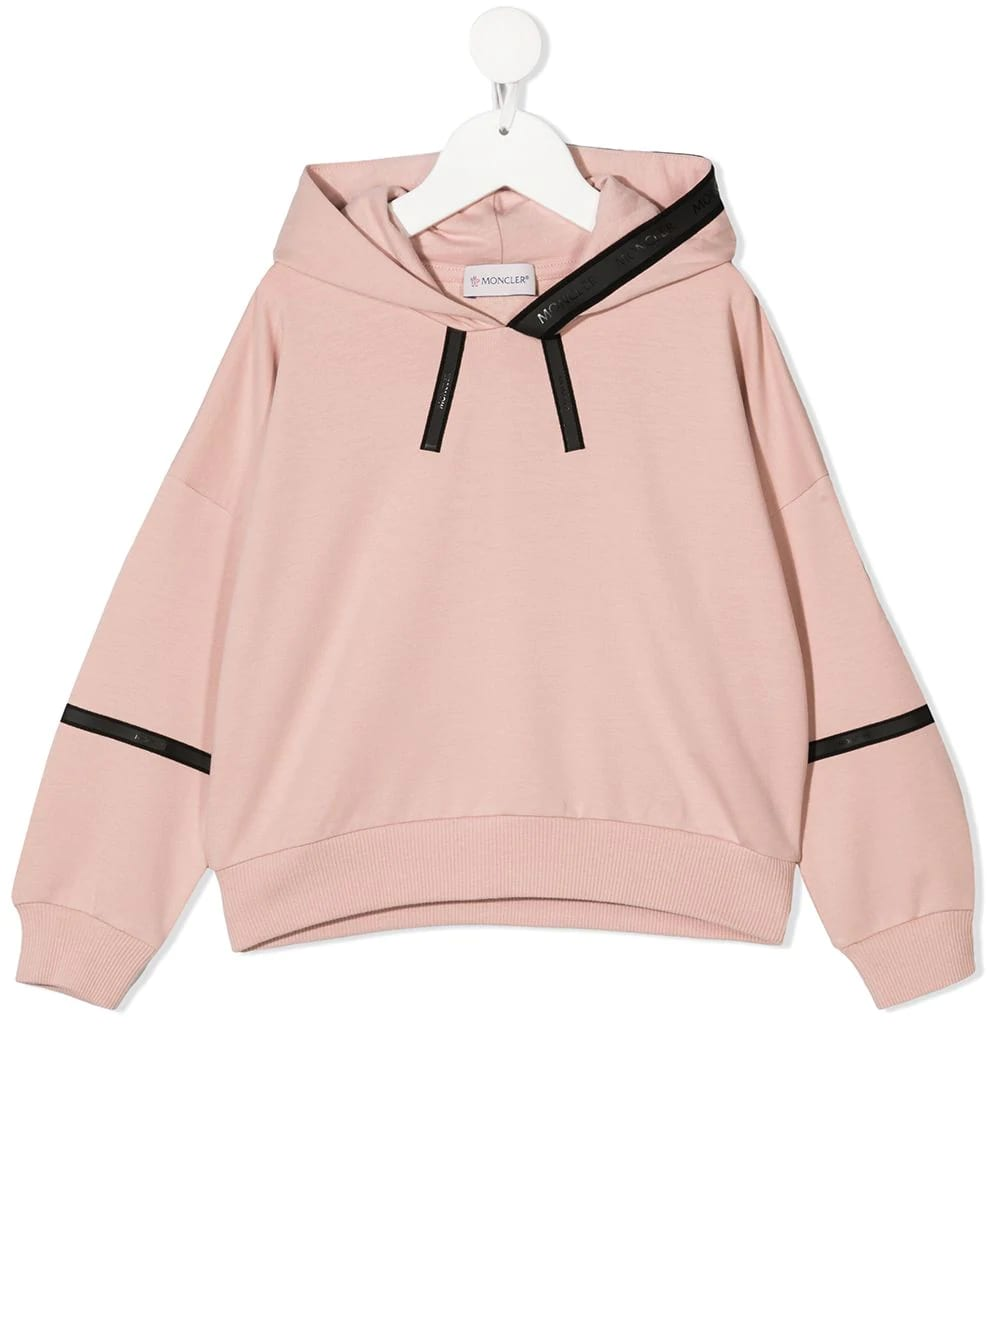 Moncler LIGHT PINK KID HOODIE WITH HEAT-SEALED DETAILS